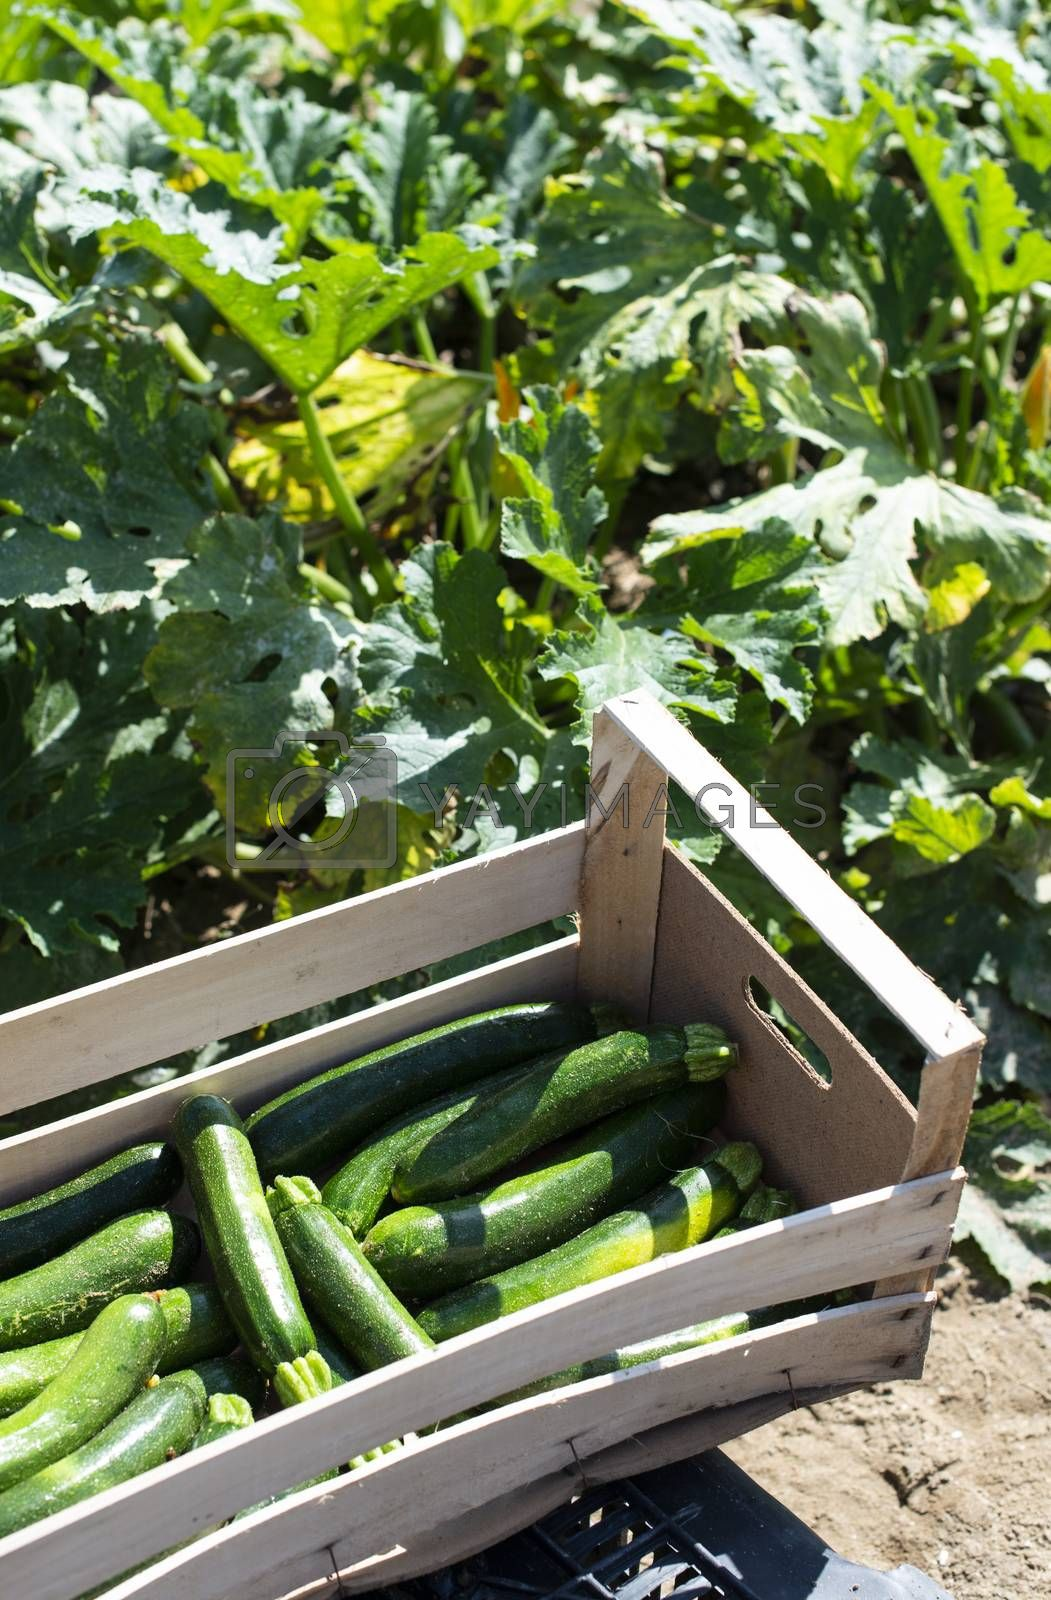 Picking zucchini in industrial farm. Wooden crates with zucchini by deyan_georgiev